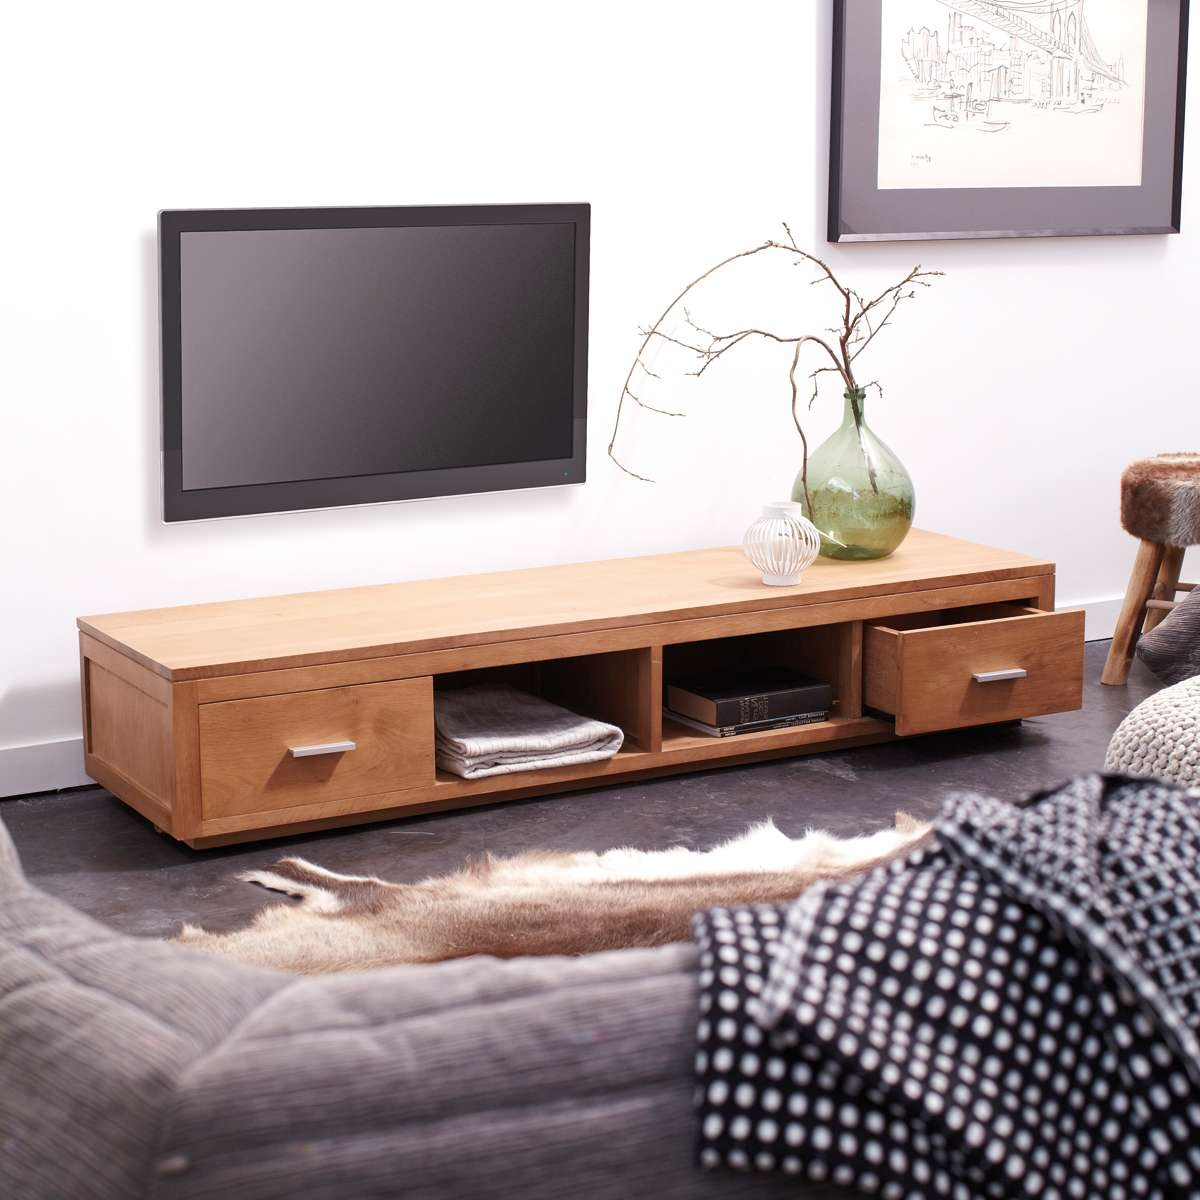 Tikamoon Solid Oak Tv Cabinet Entertainment Unit Tv Stand 2 Pertaining To Modern Oak Tv Stands (View 15 of 15)